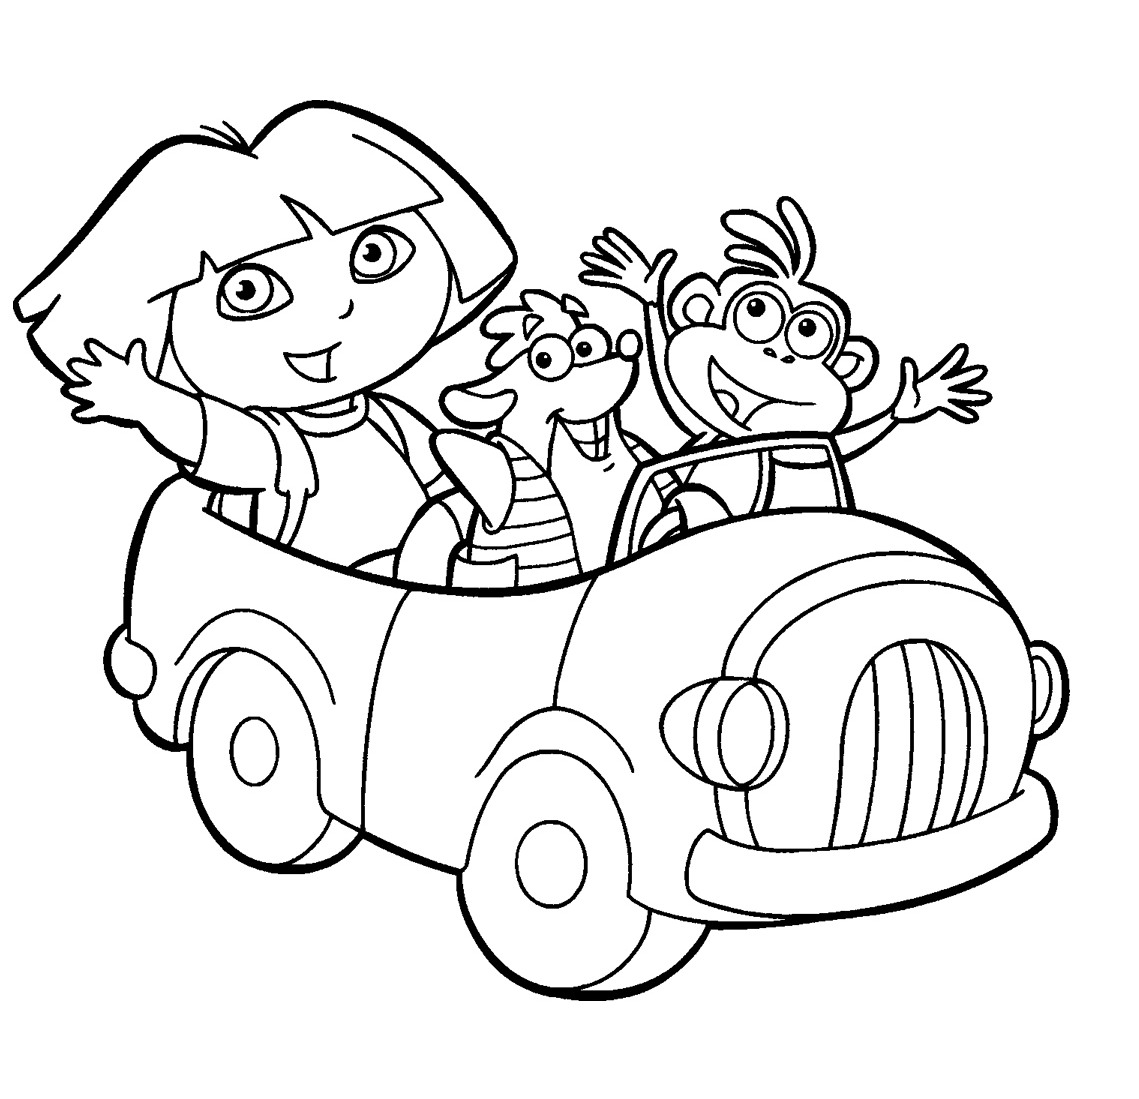 14 Dora The Explorer Coloring Page To Print Print Color